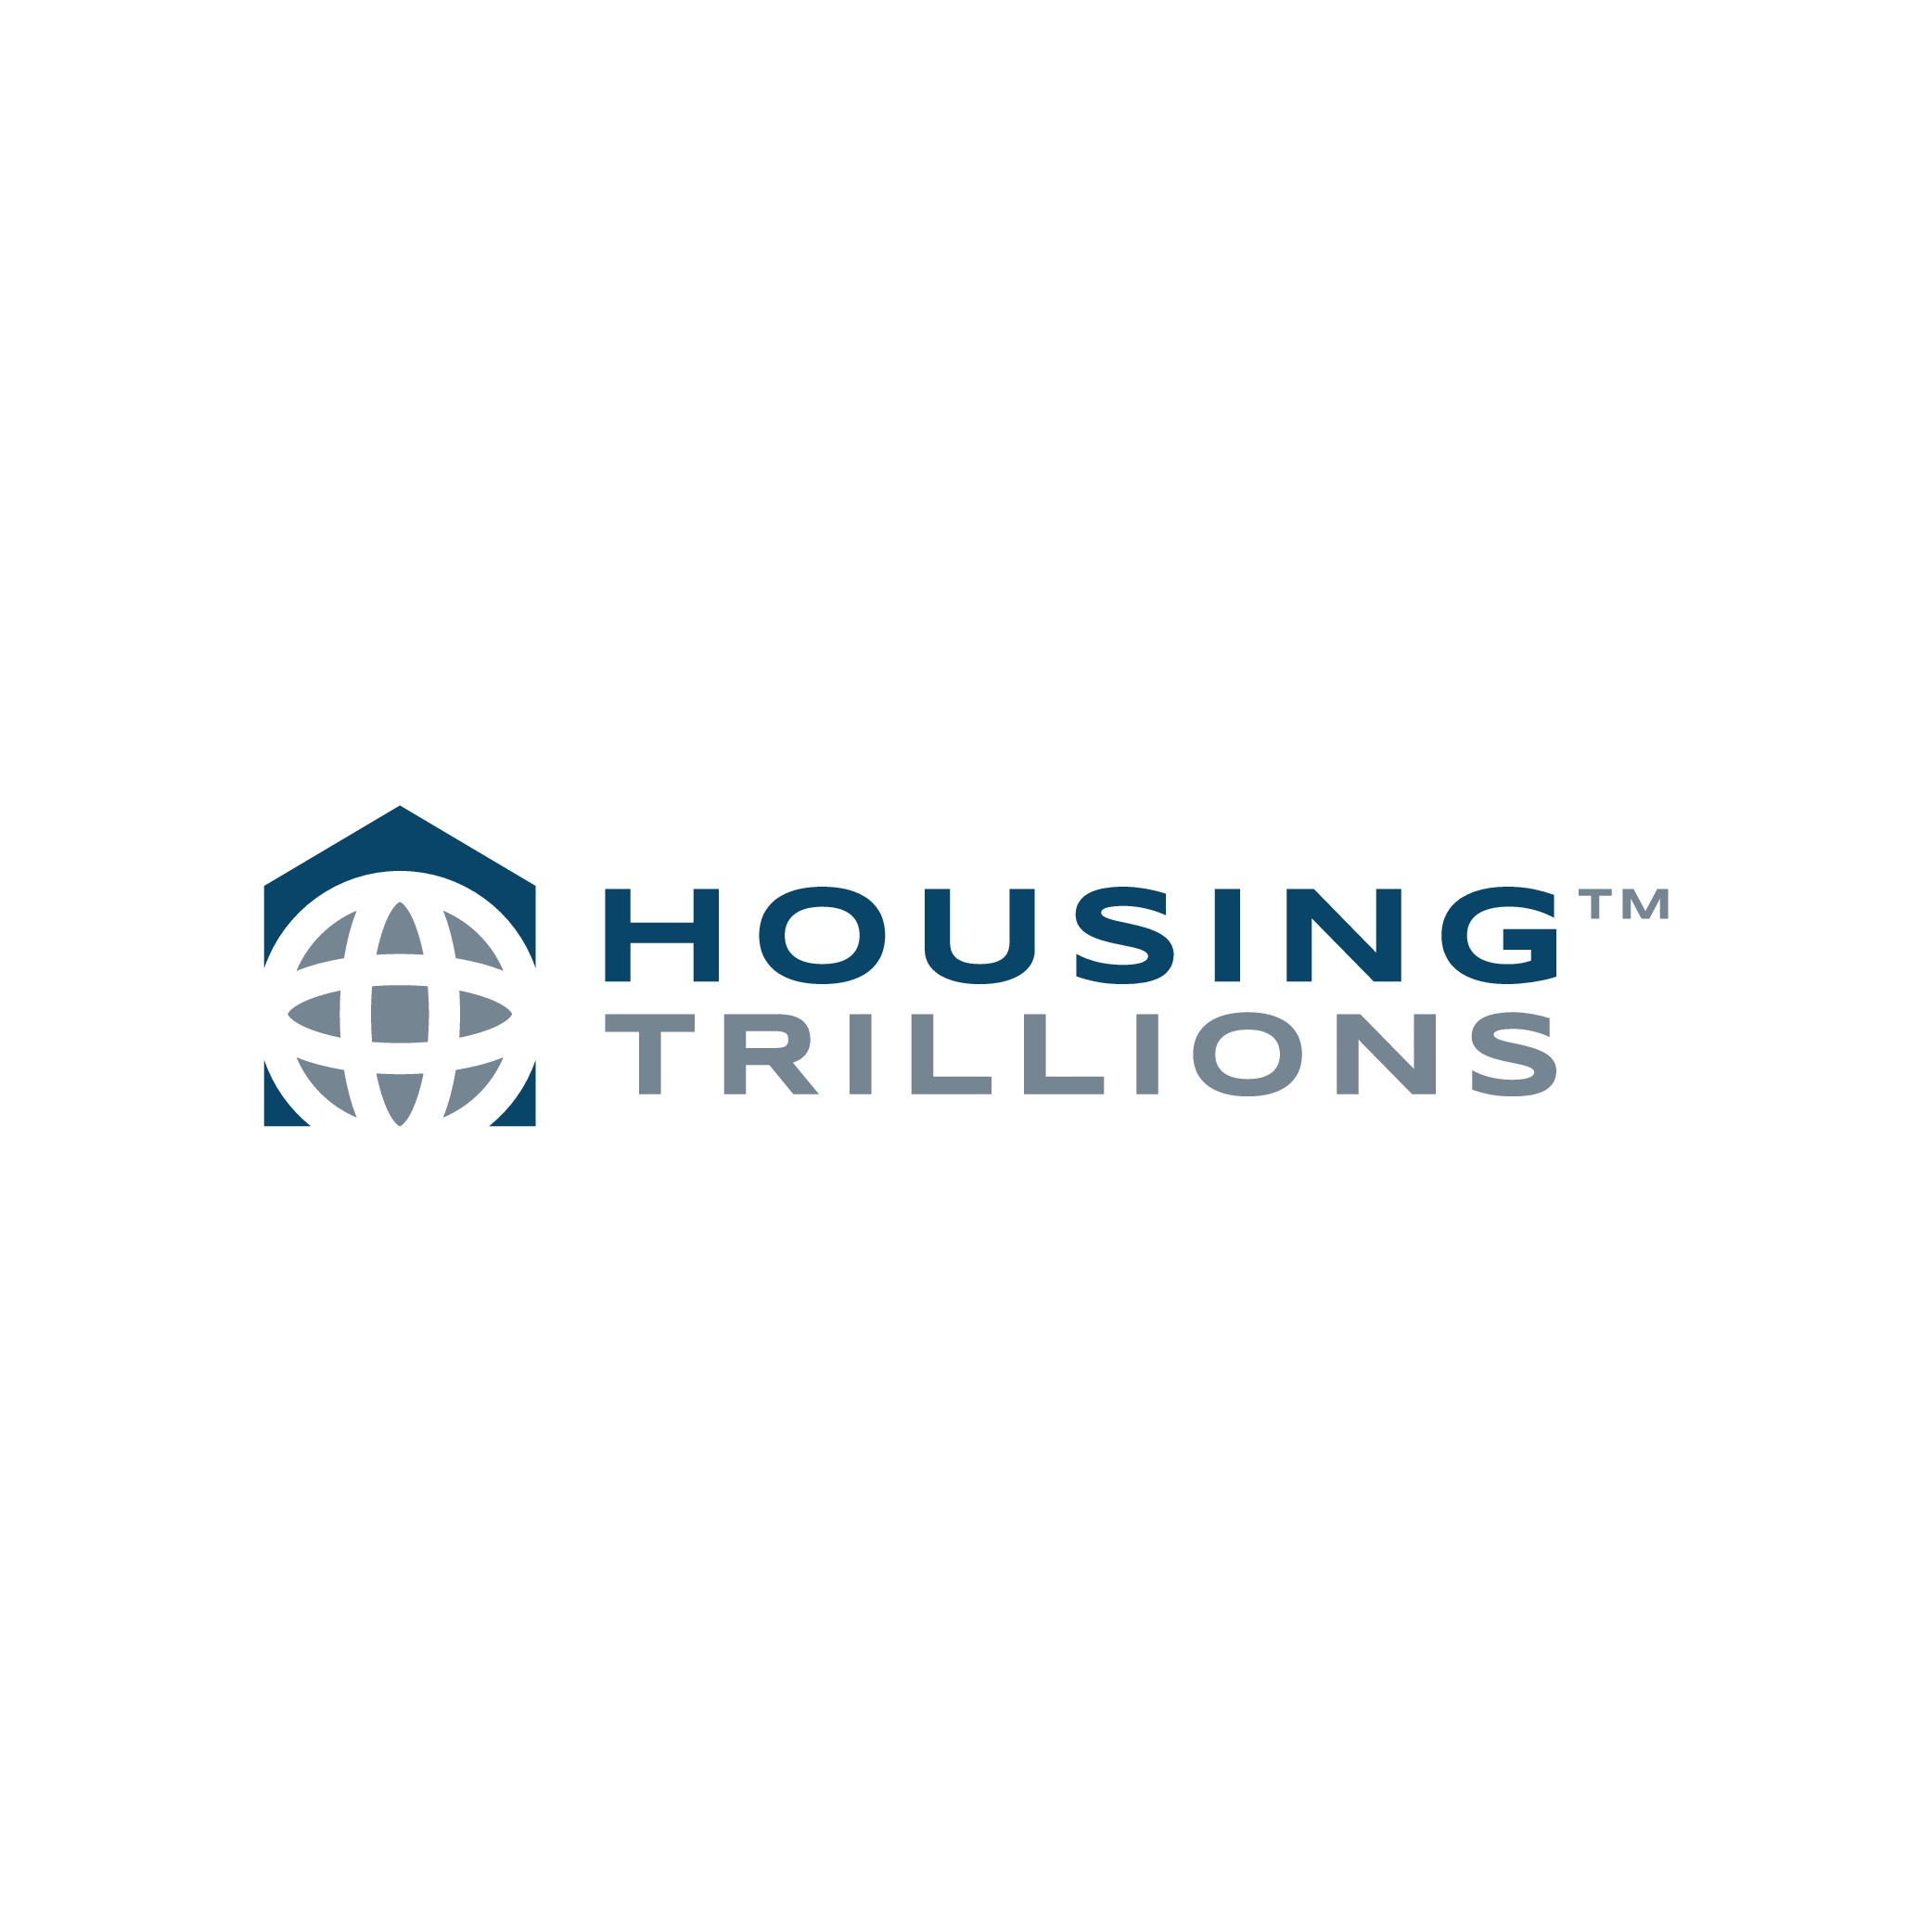 Construction Technologies To Build Affordable Homes